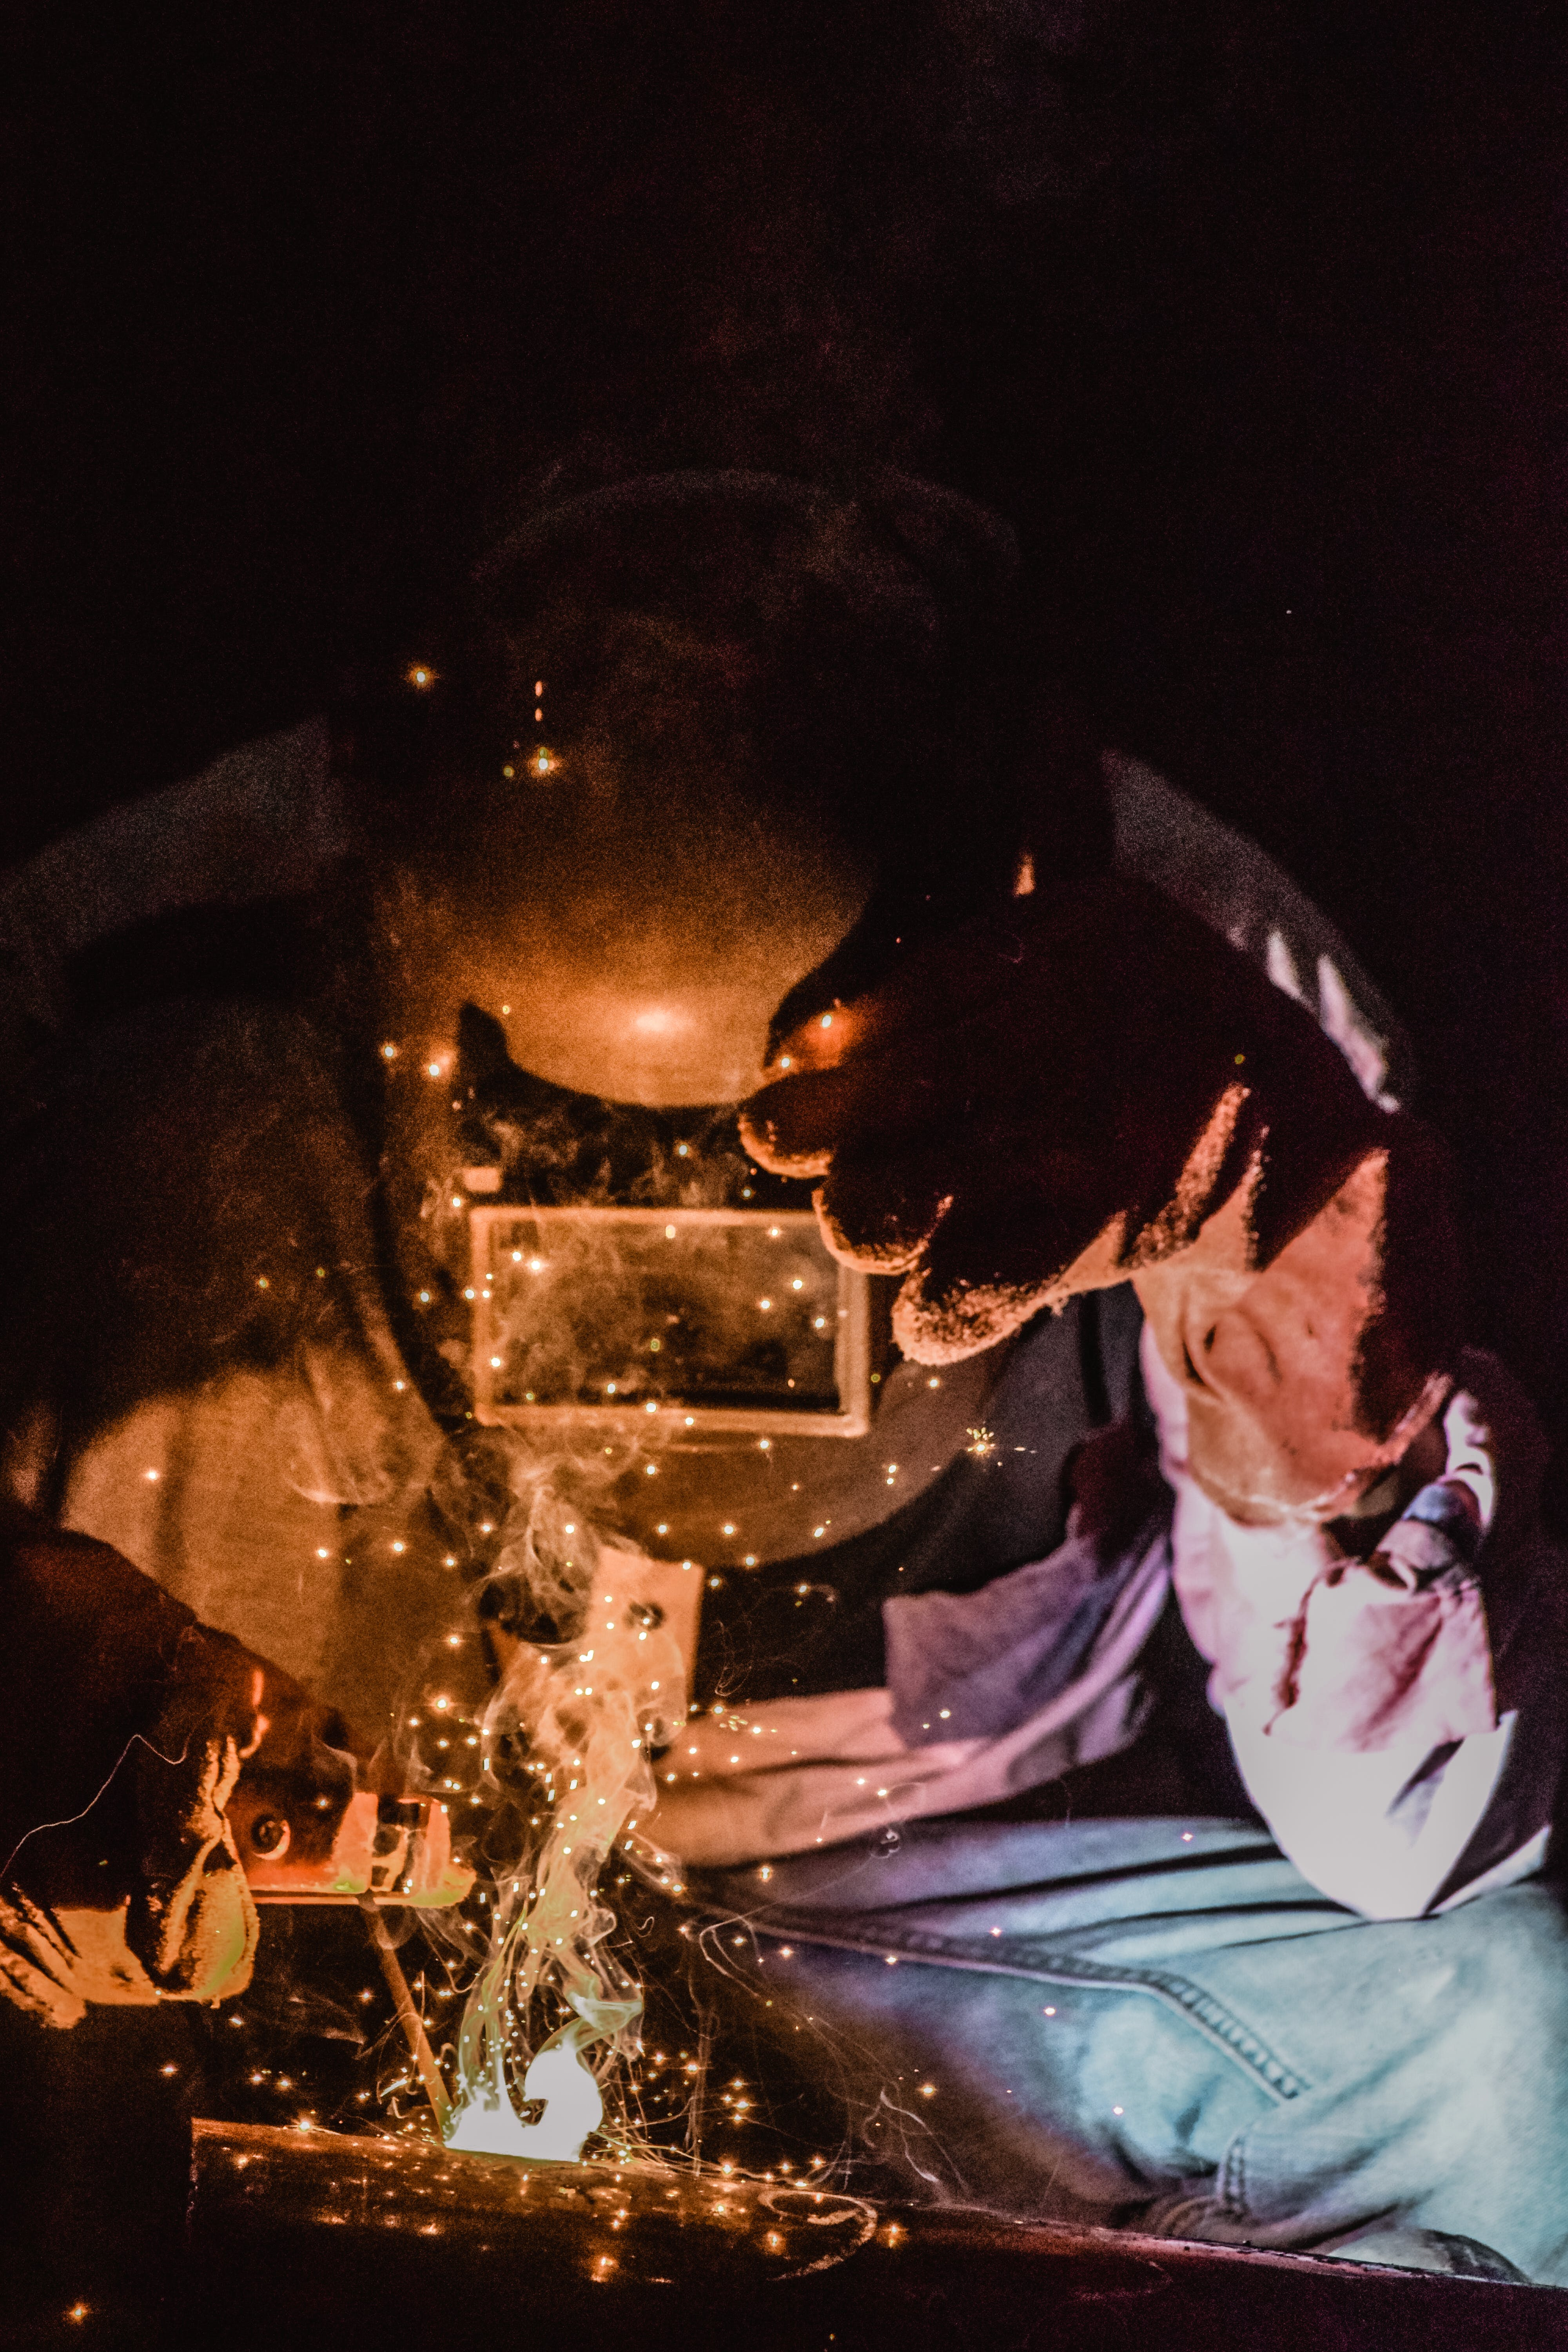 Photography of a Person Wearing Welding Mask